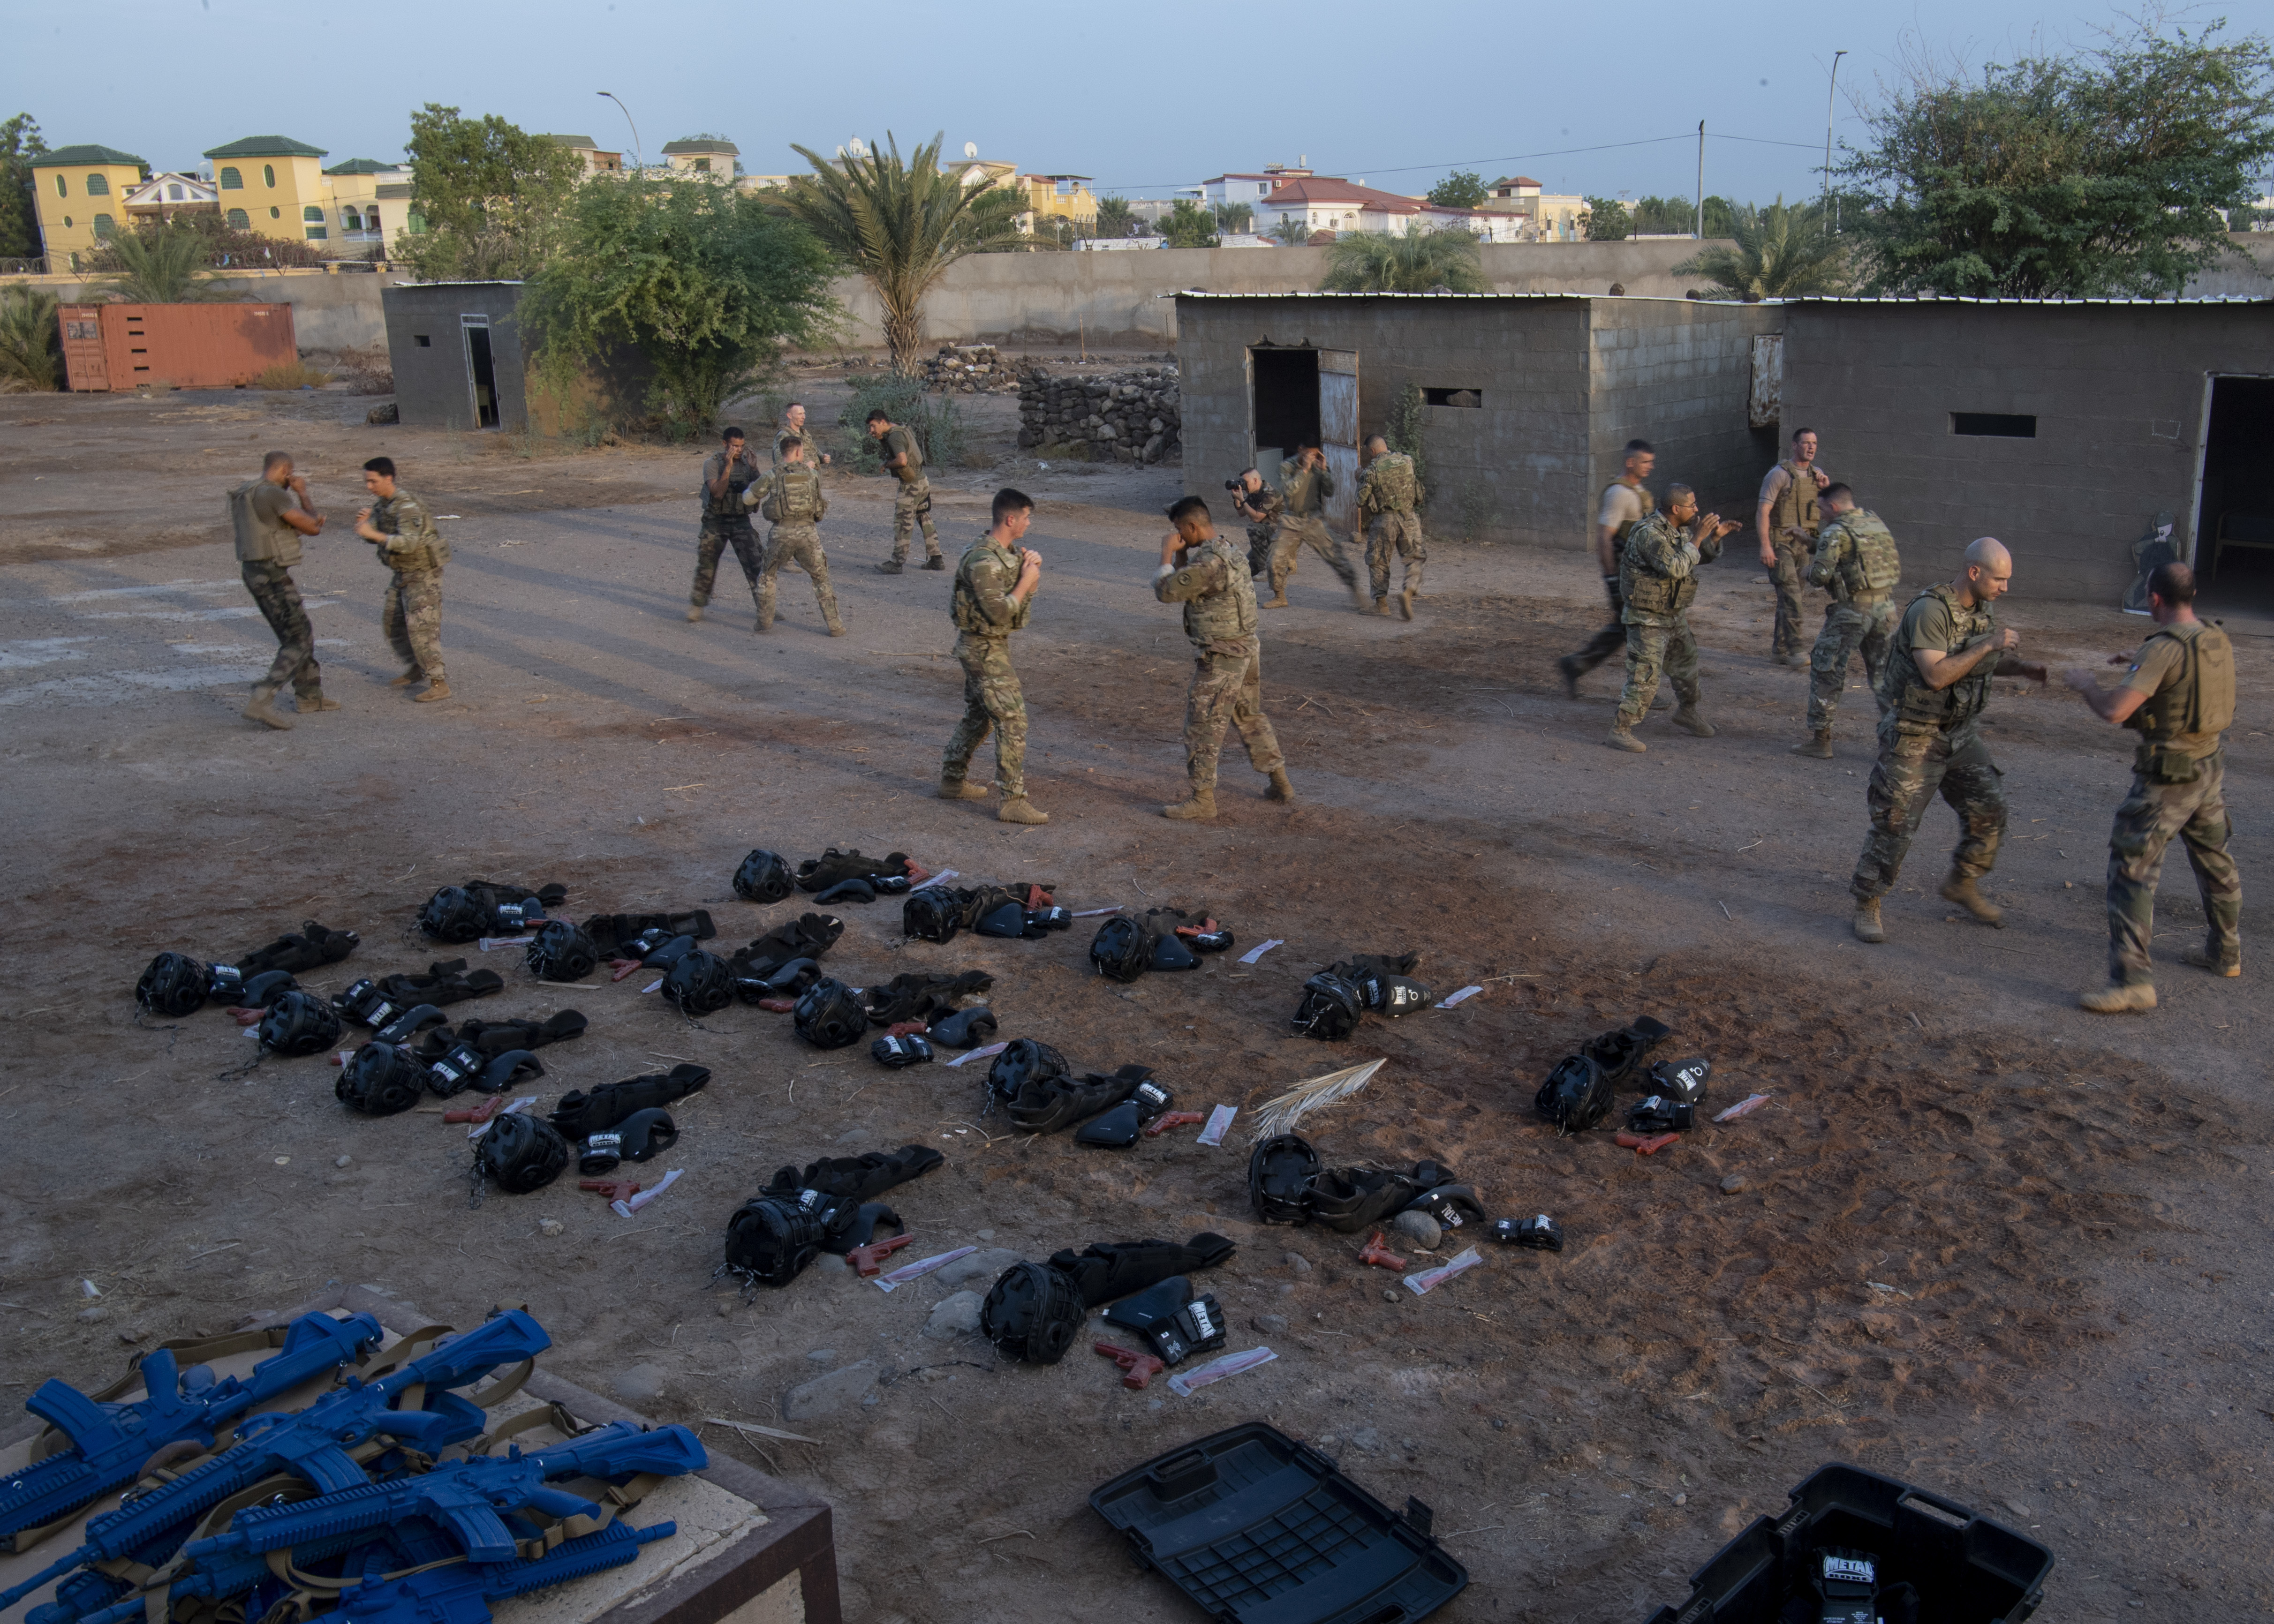 U.S. Army Soldiers assigned to Combined Joint Task Force-Horn of Africa (CJTF-HOA) and French Marines assigned to the 5th Overseas Intermarines Regiment (RIAOM) participated in a combatives exchange training at Djibouti Air Base, Djibouti, Sept. 2, 2019. The purpose of the joint training was to share French Marine and U.S. Army combative techniques and further the relationship between the two forces. (U.S. Air Force photo by Staff Sgt. J.D. Strong II)